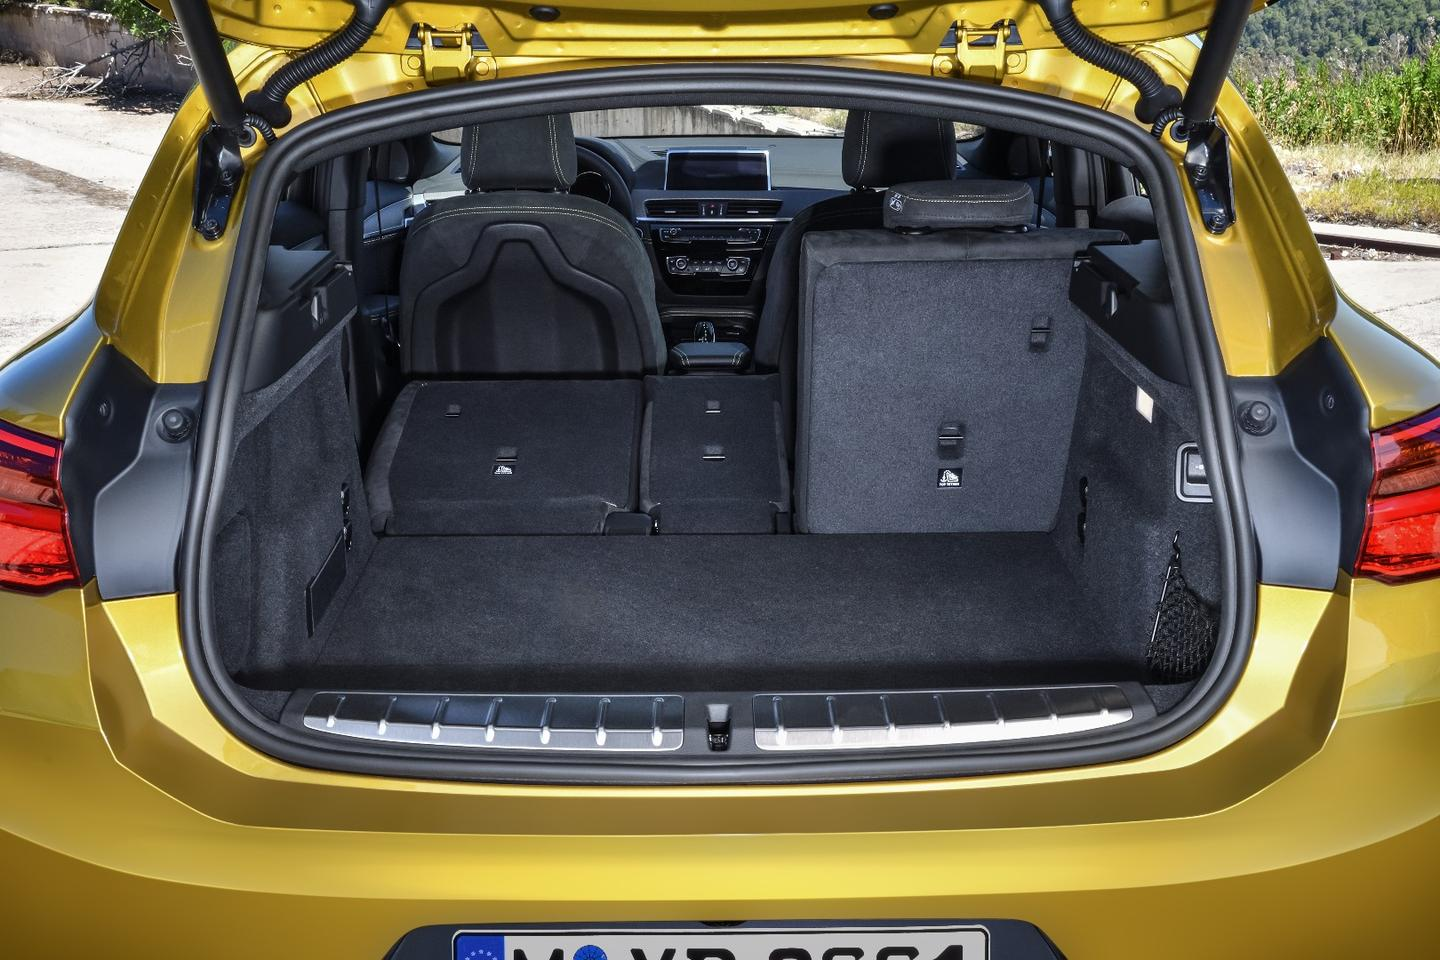 2018 BMW X2: Large 50.1 cubic feet (1419 L) trunk capacity